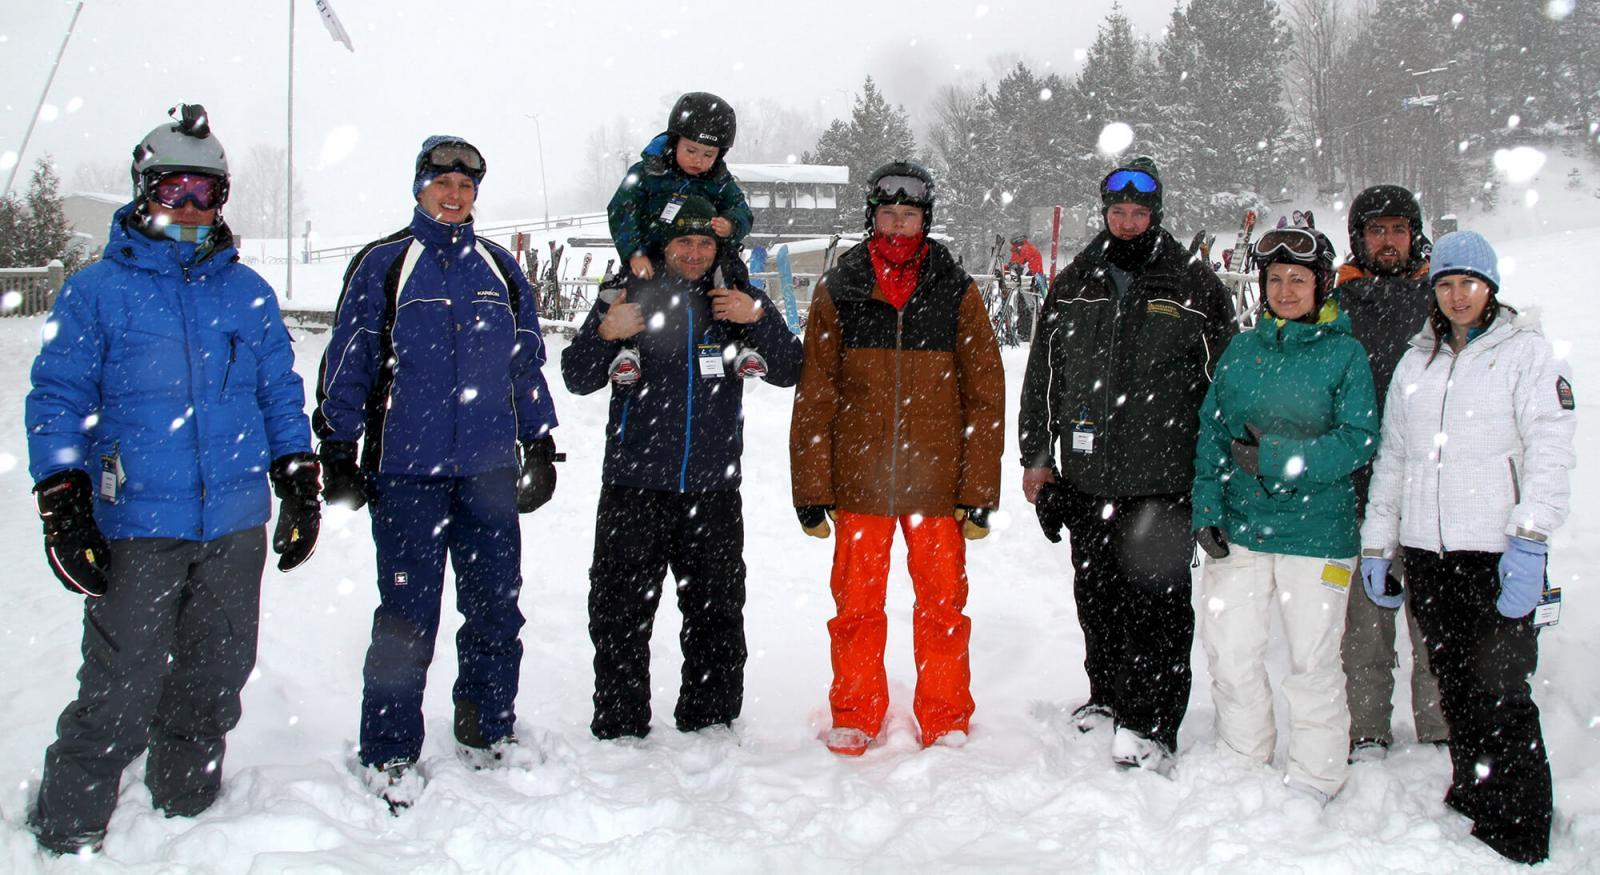 Georgian Lakelands Chapter's annual ski event was blessed with 20 cm of snow throughout the day.